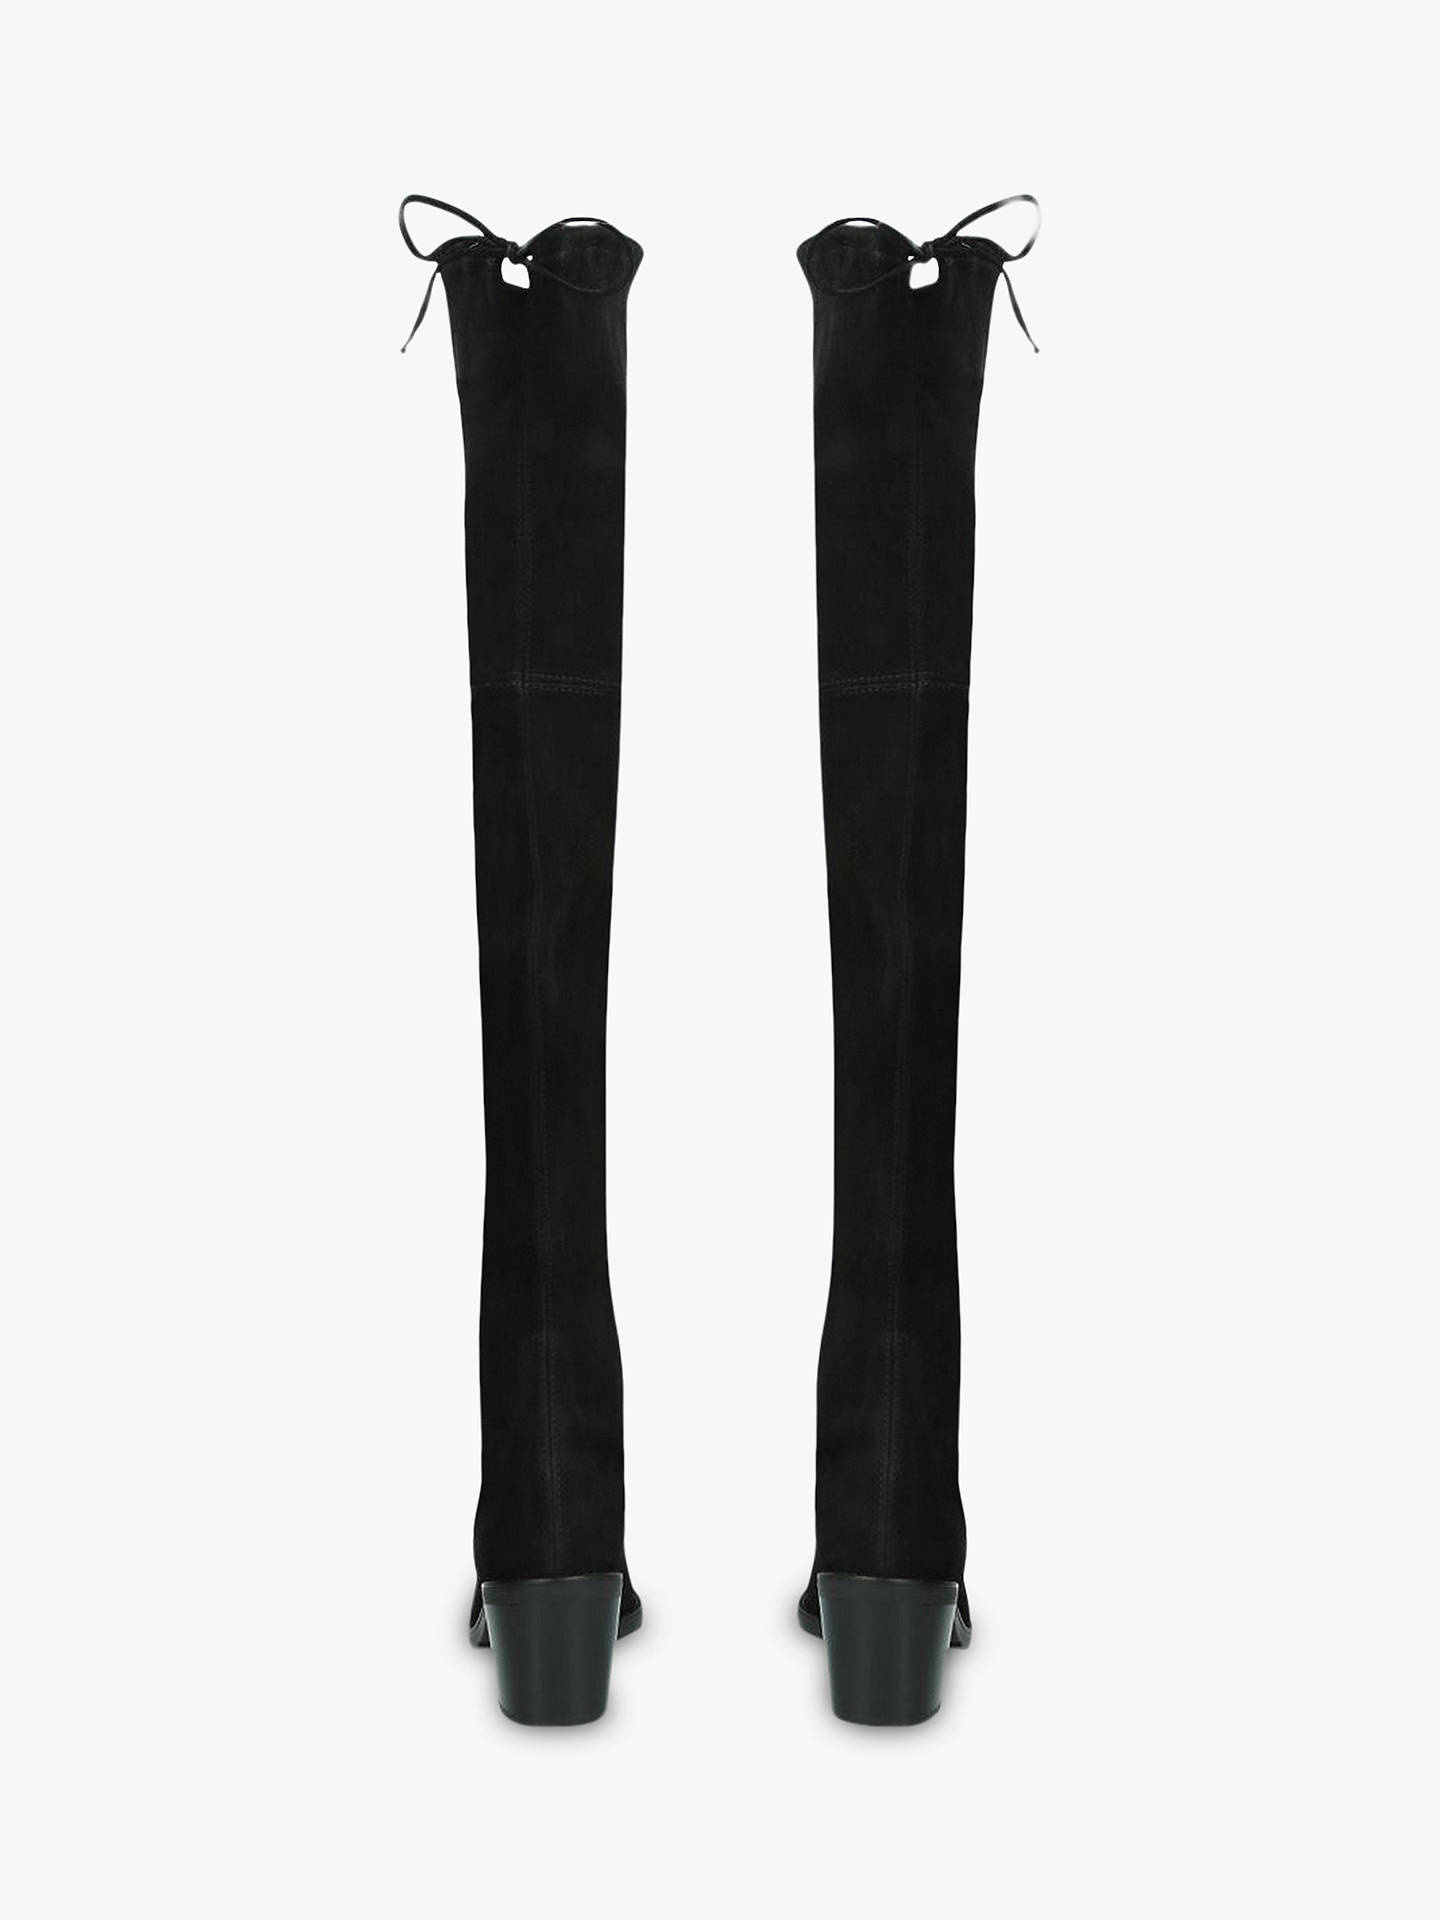 f4ef6561d4b7 ... Buy Stuart Weitzman Urban Over the Knee Boots